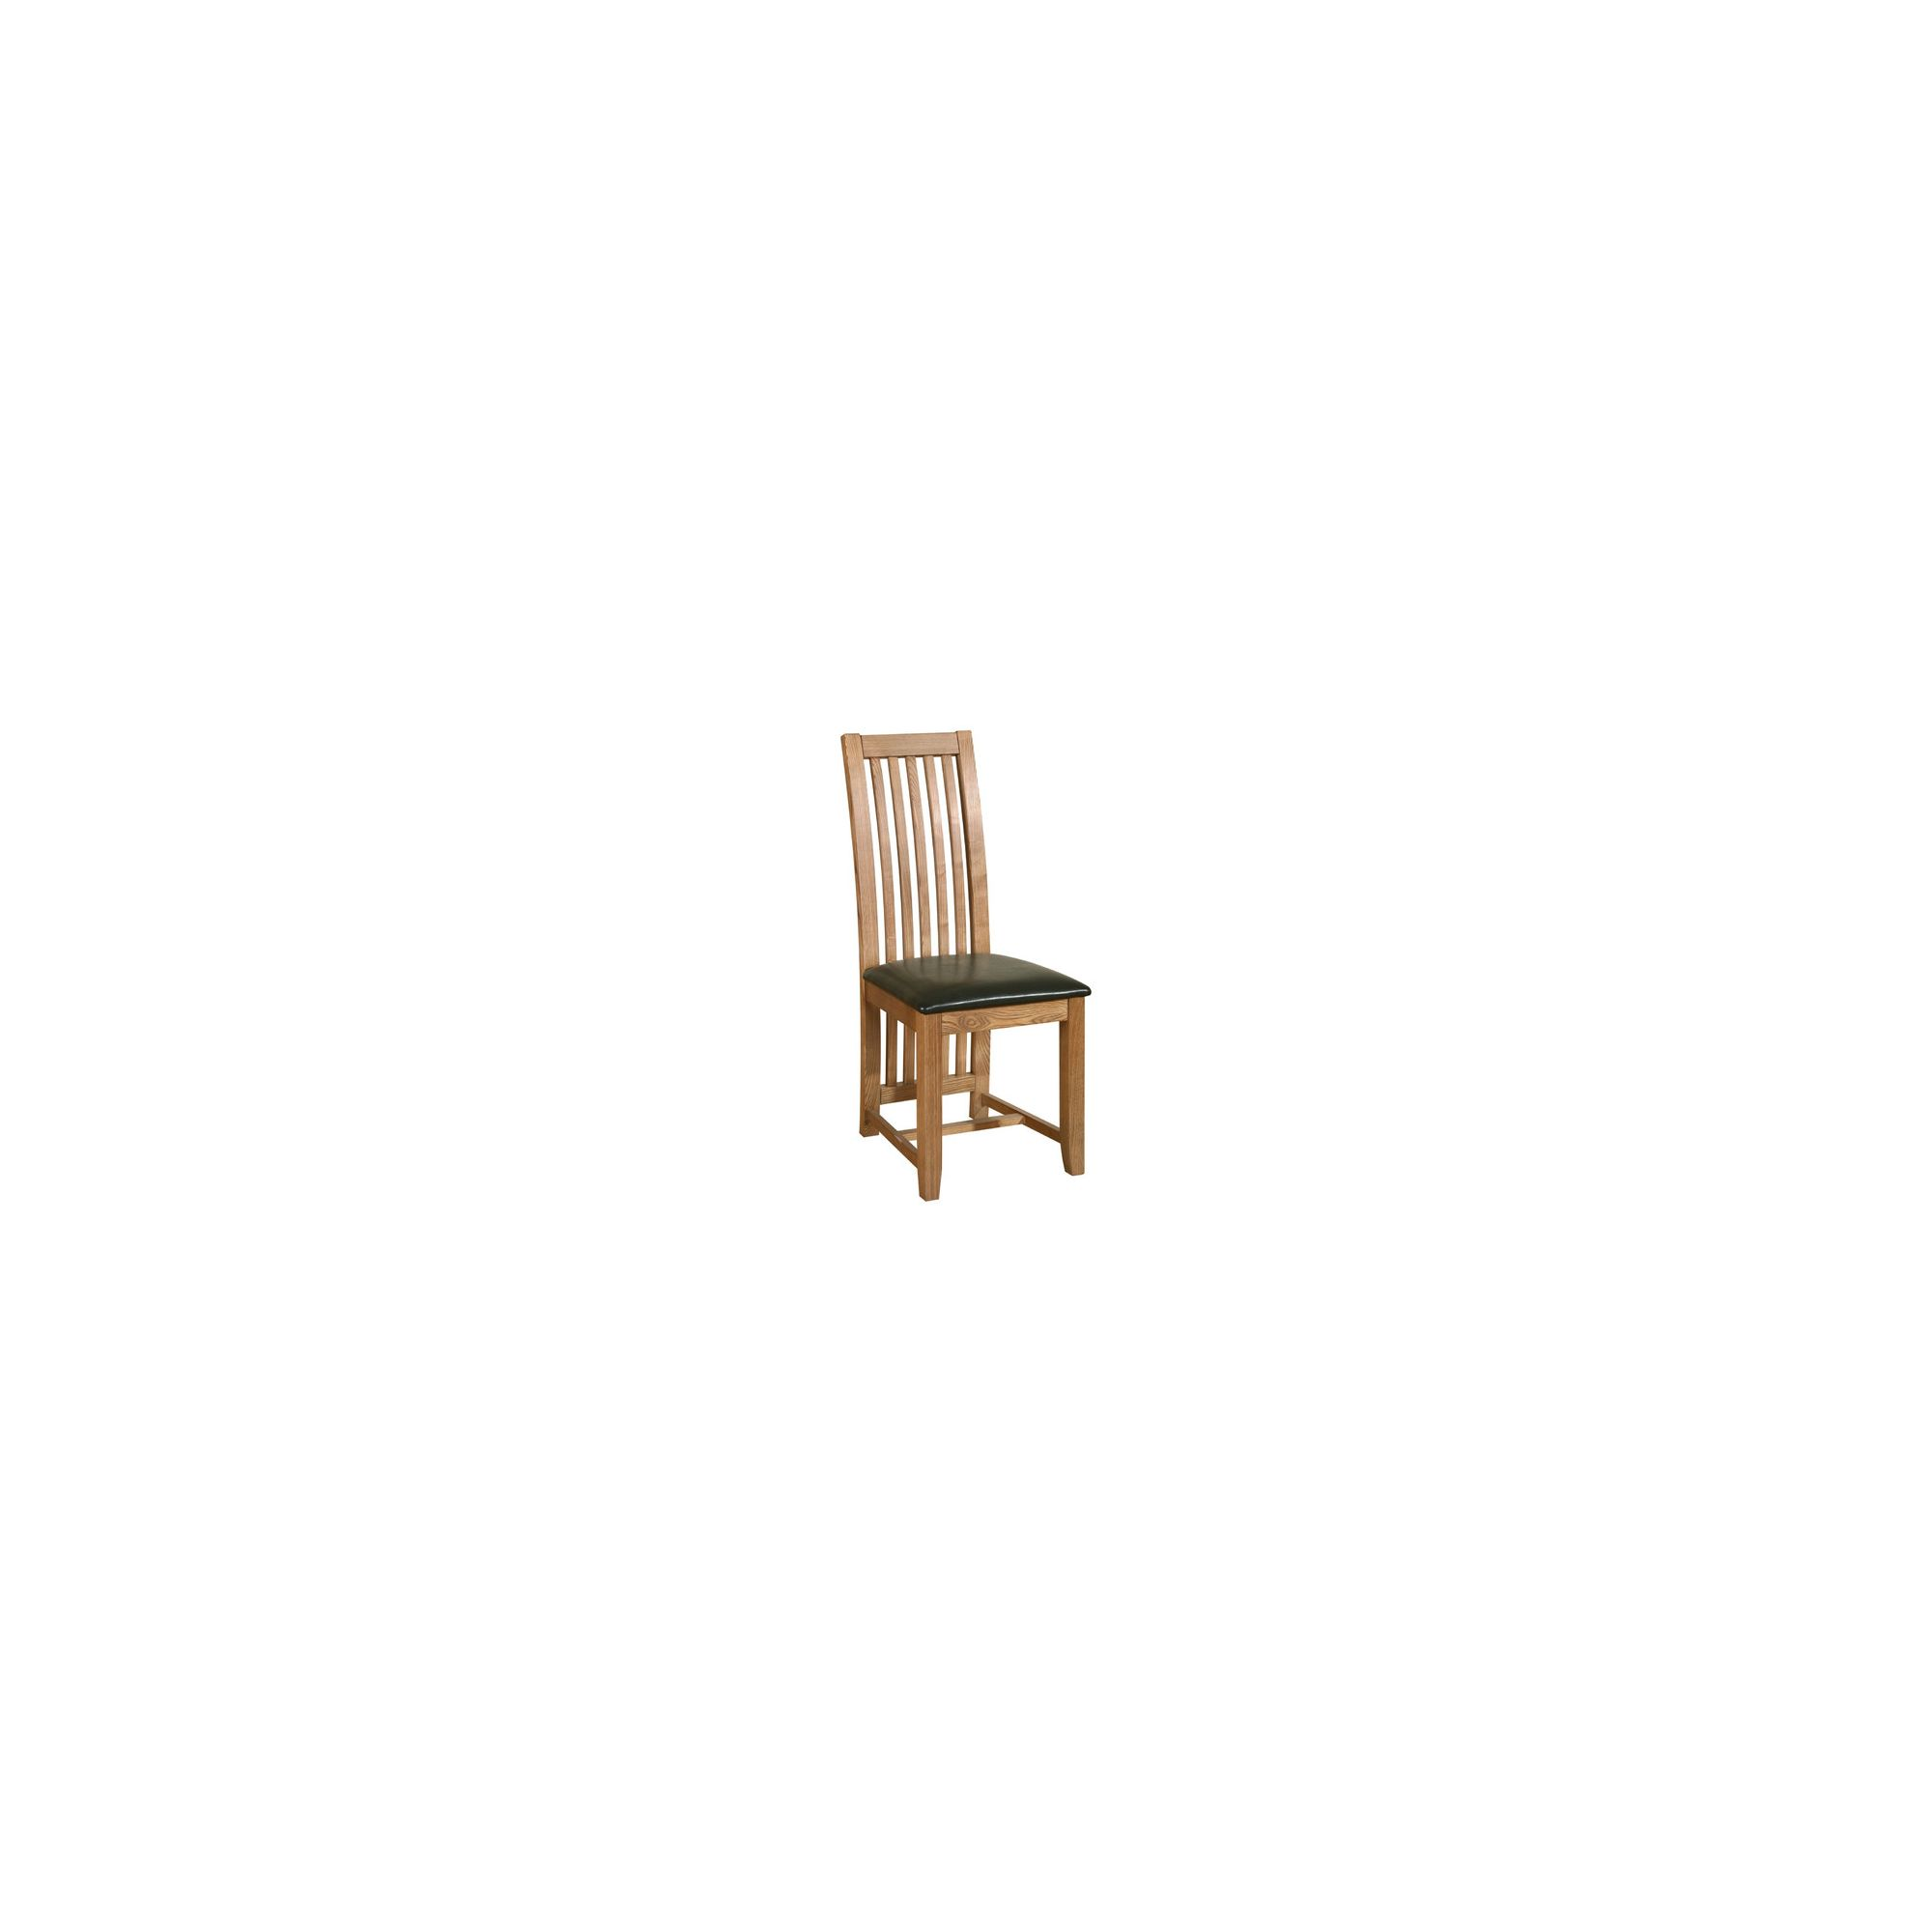 Kelburn Furniture Toulouse Dining Chair in Medium Oak Stain and Satin Lacquer